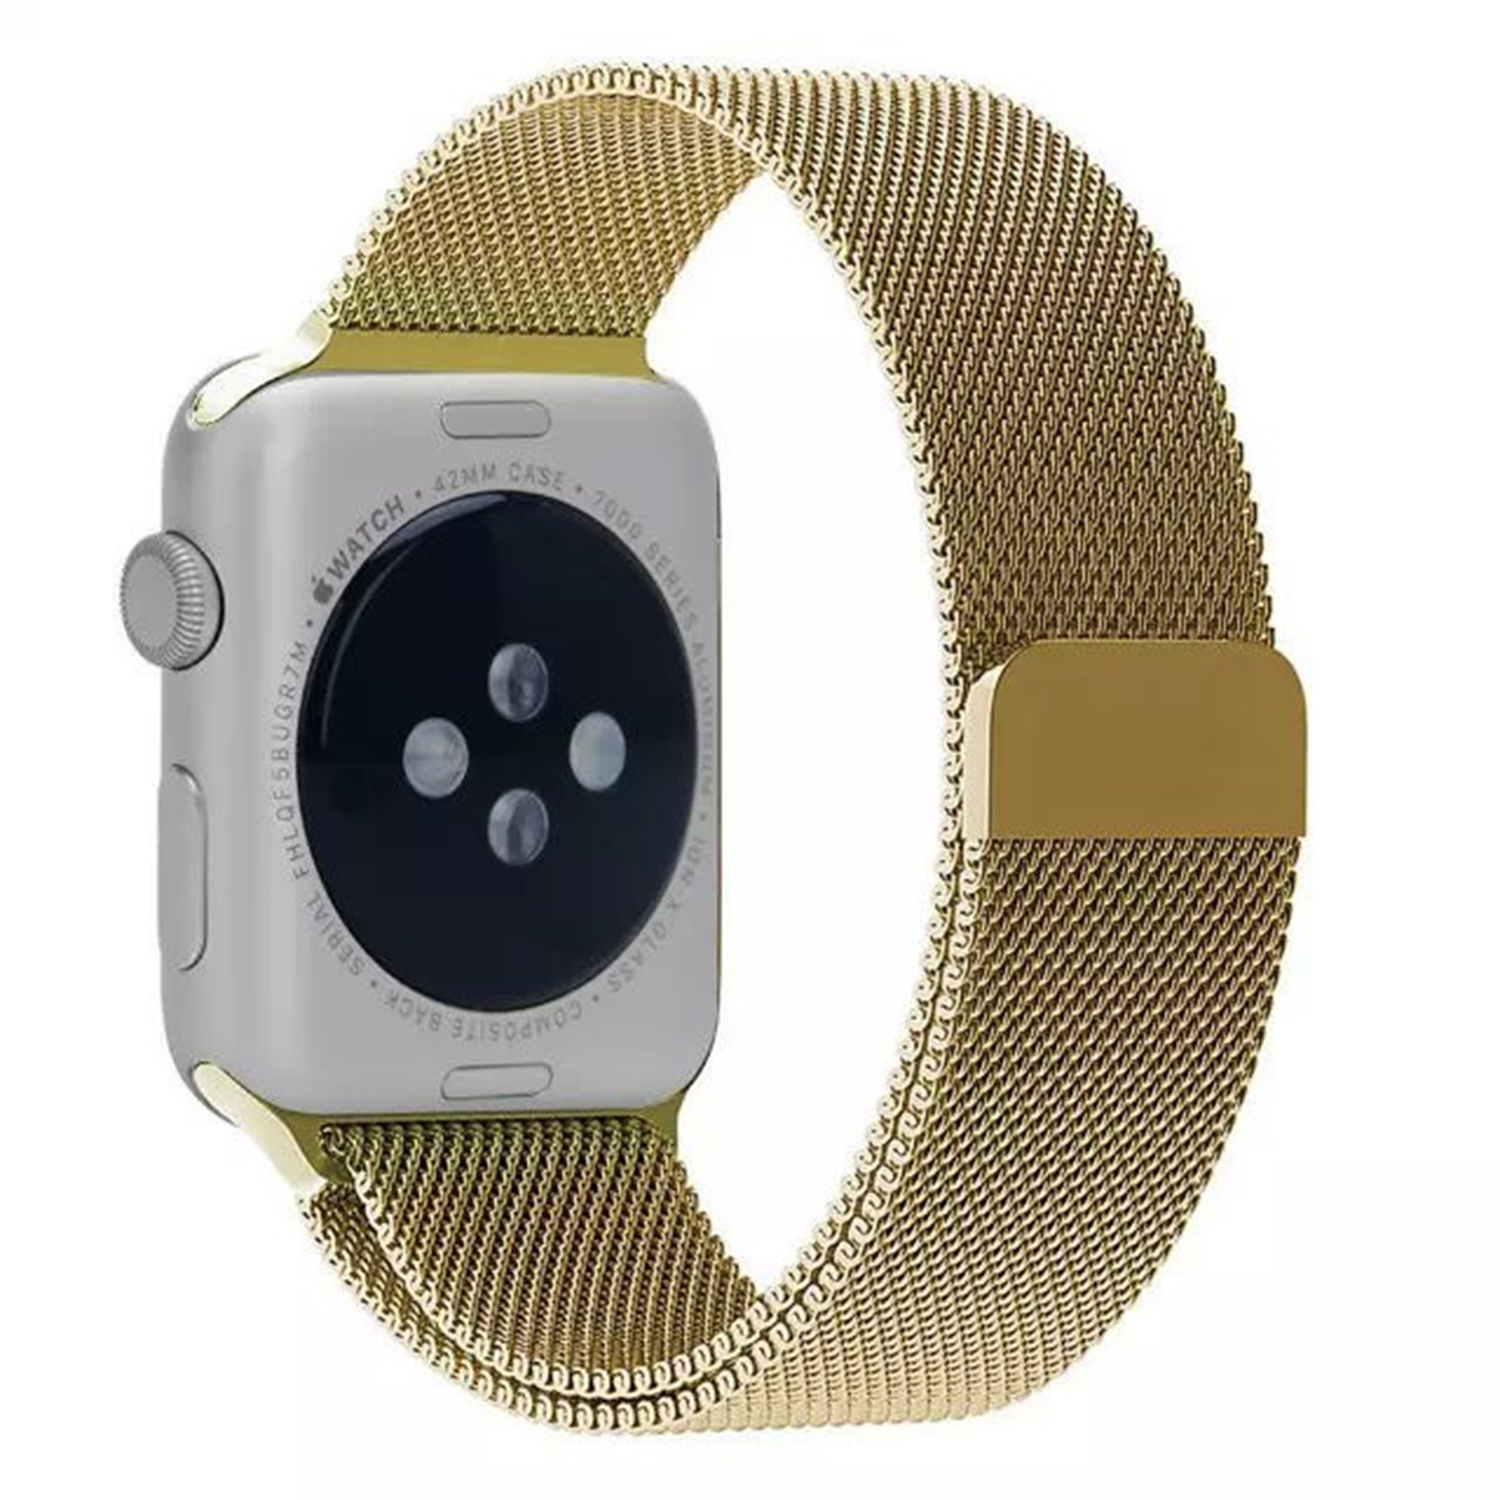 Yemota Pro Apple Watch 42 mm Stainless Steel Magnetarmband - Gold